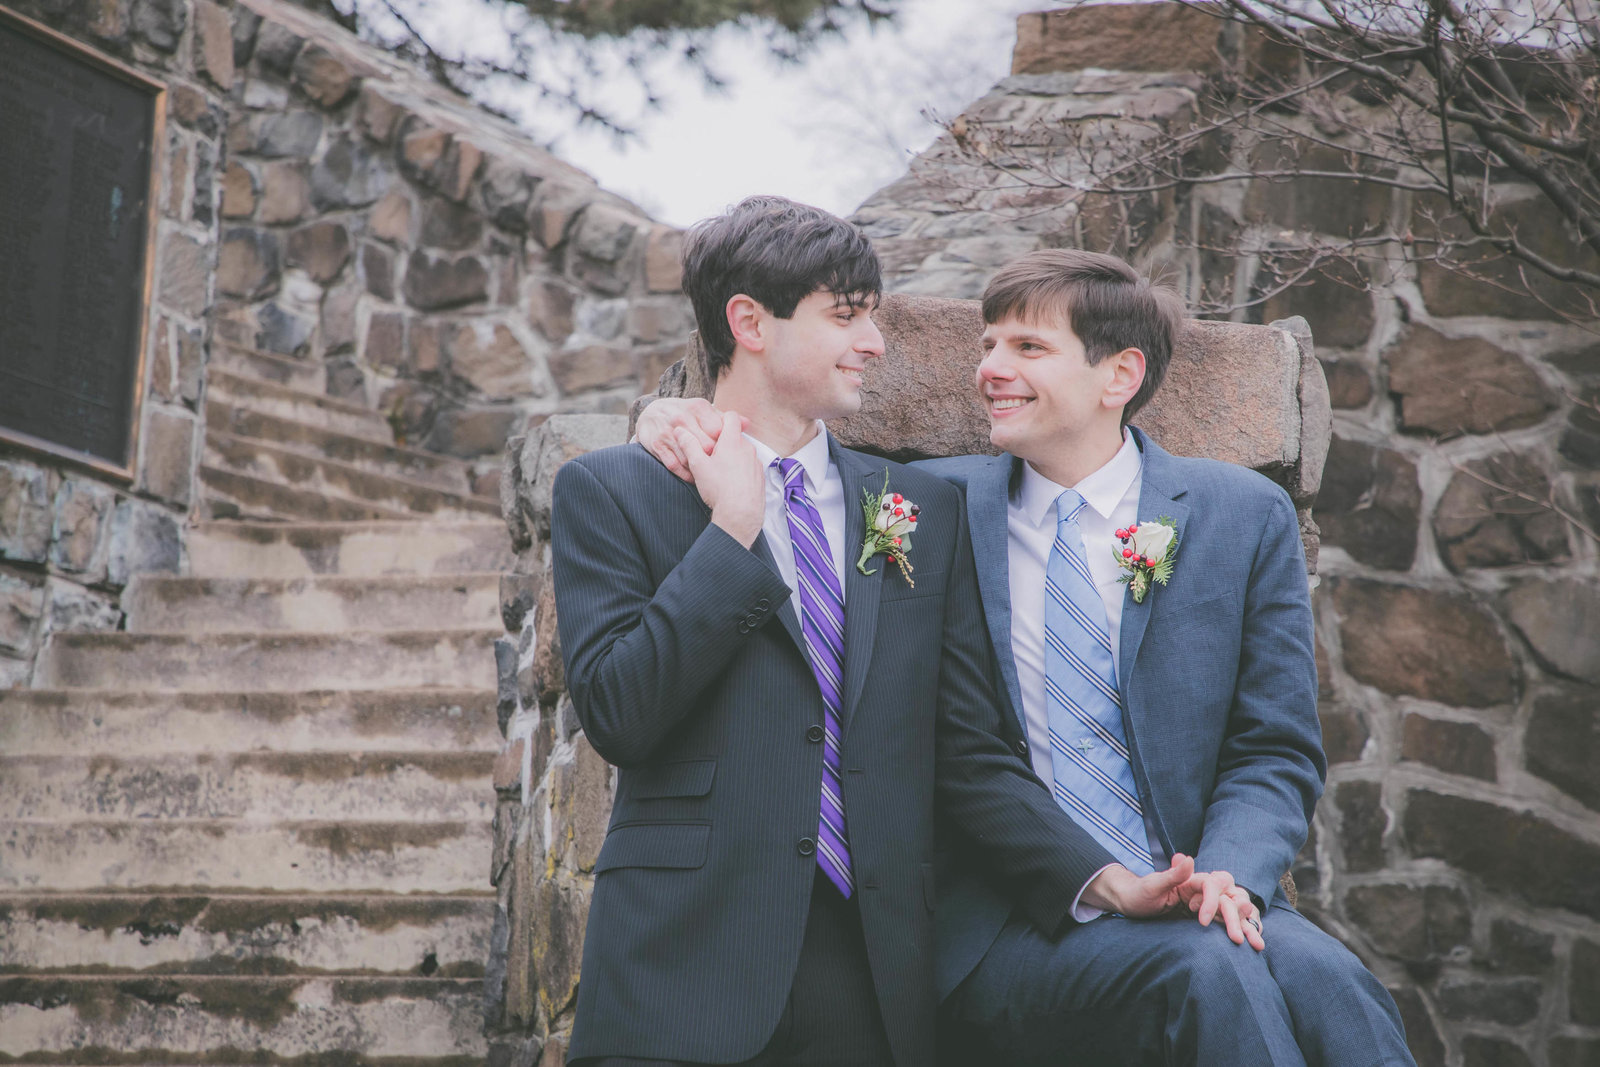 Two grooms get close during their park elopement.